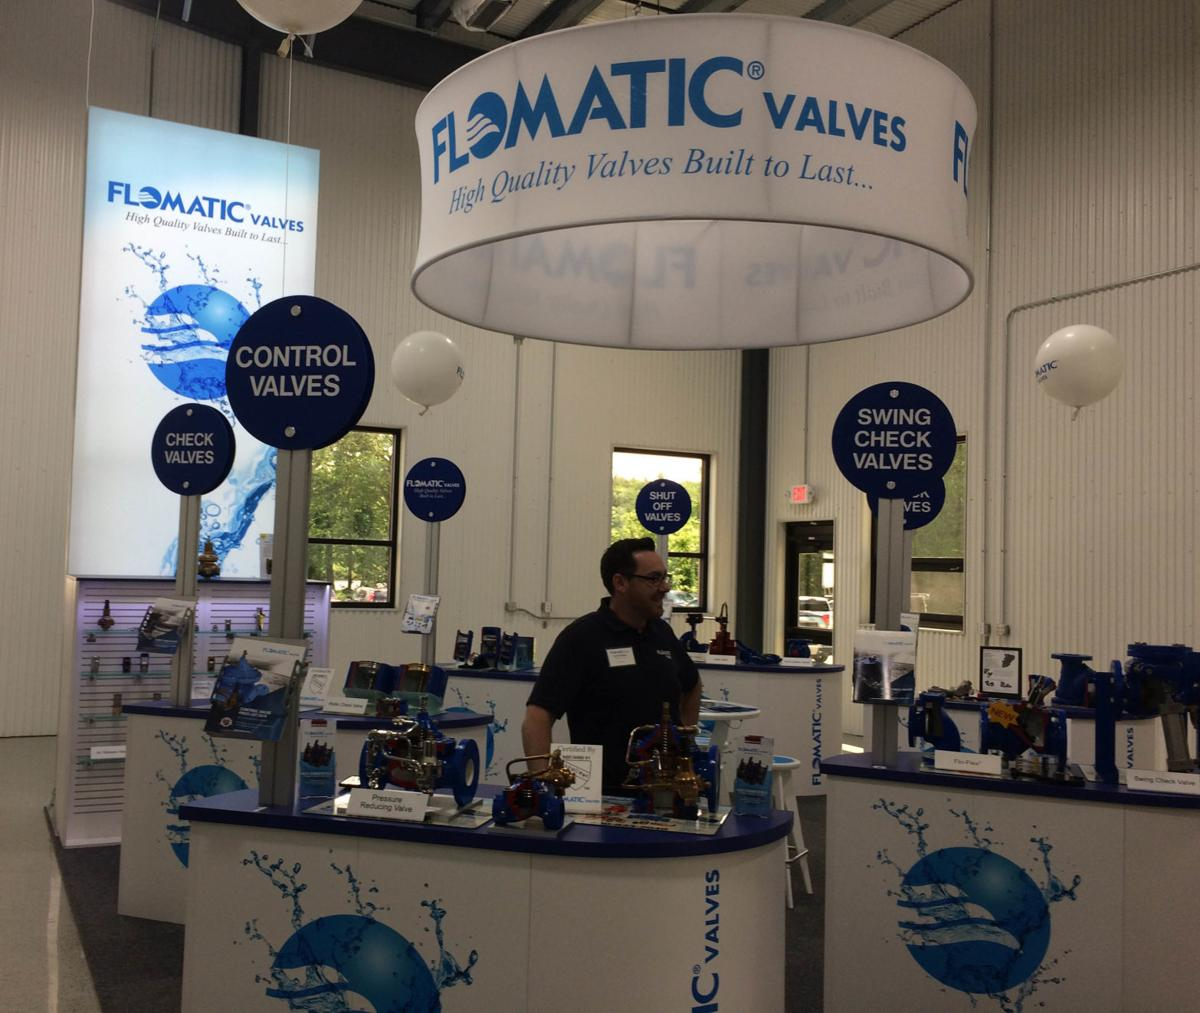 Flomatic celebrates expansion